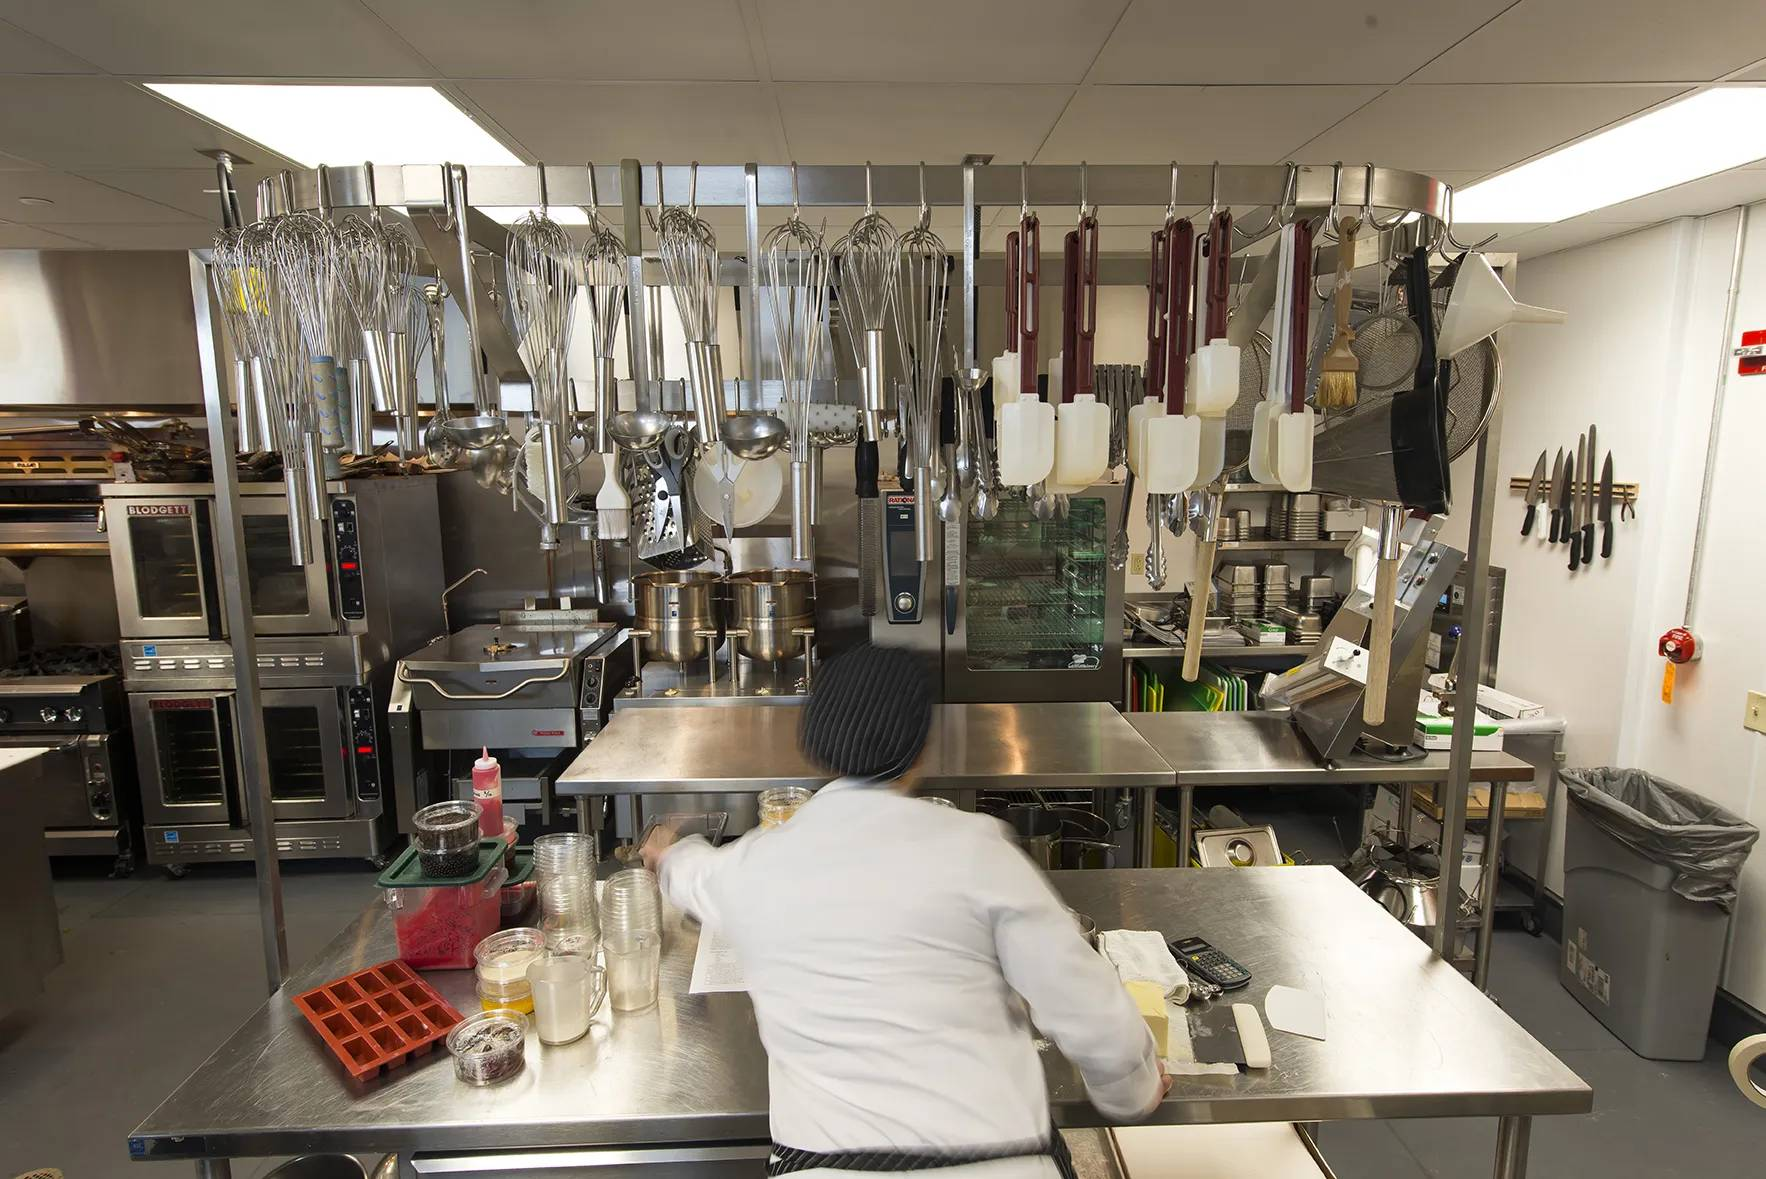 commercial_kitchen_supplies